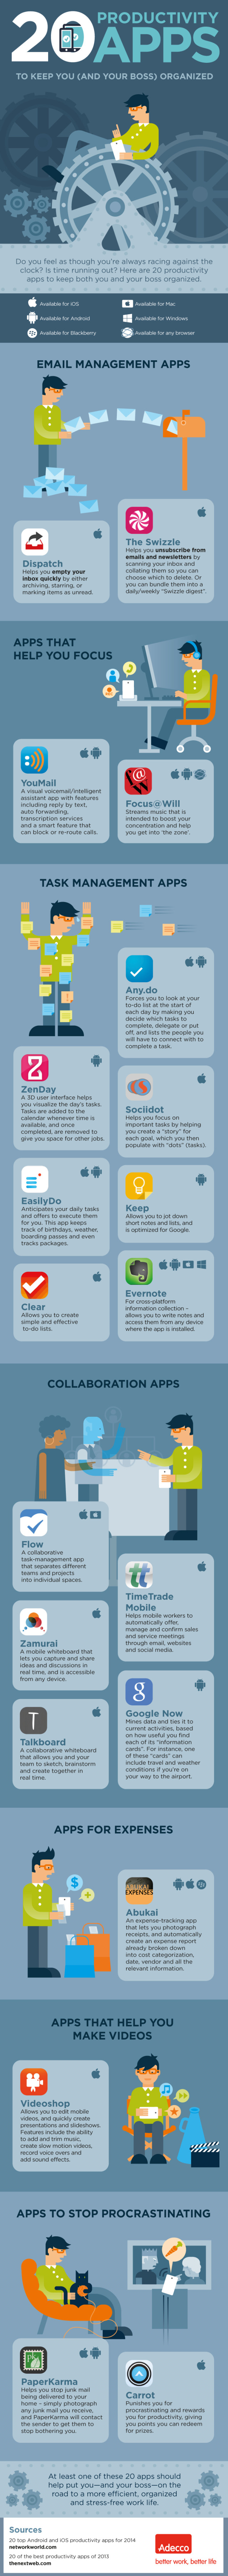 20 Productivity Apps Infographic